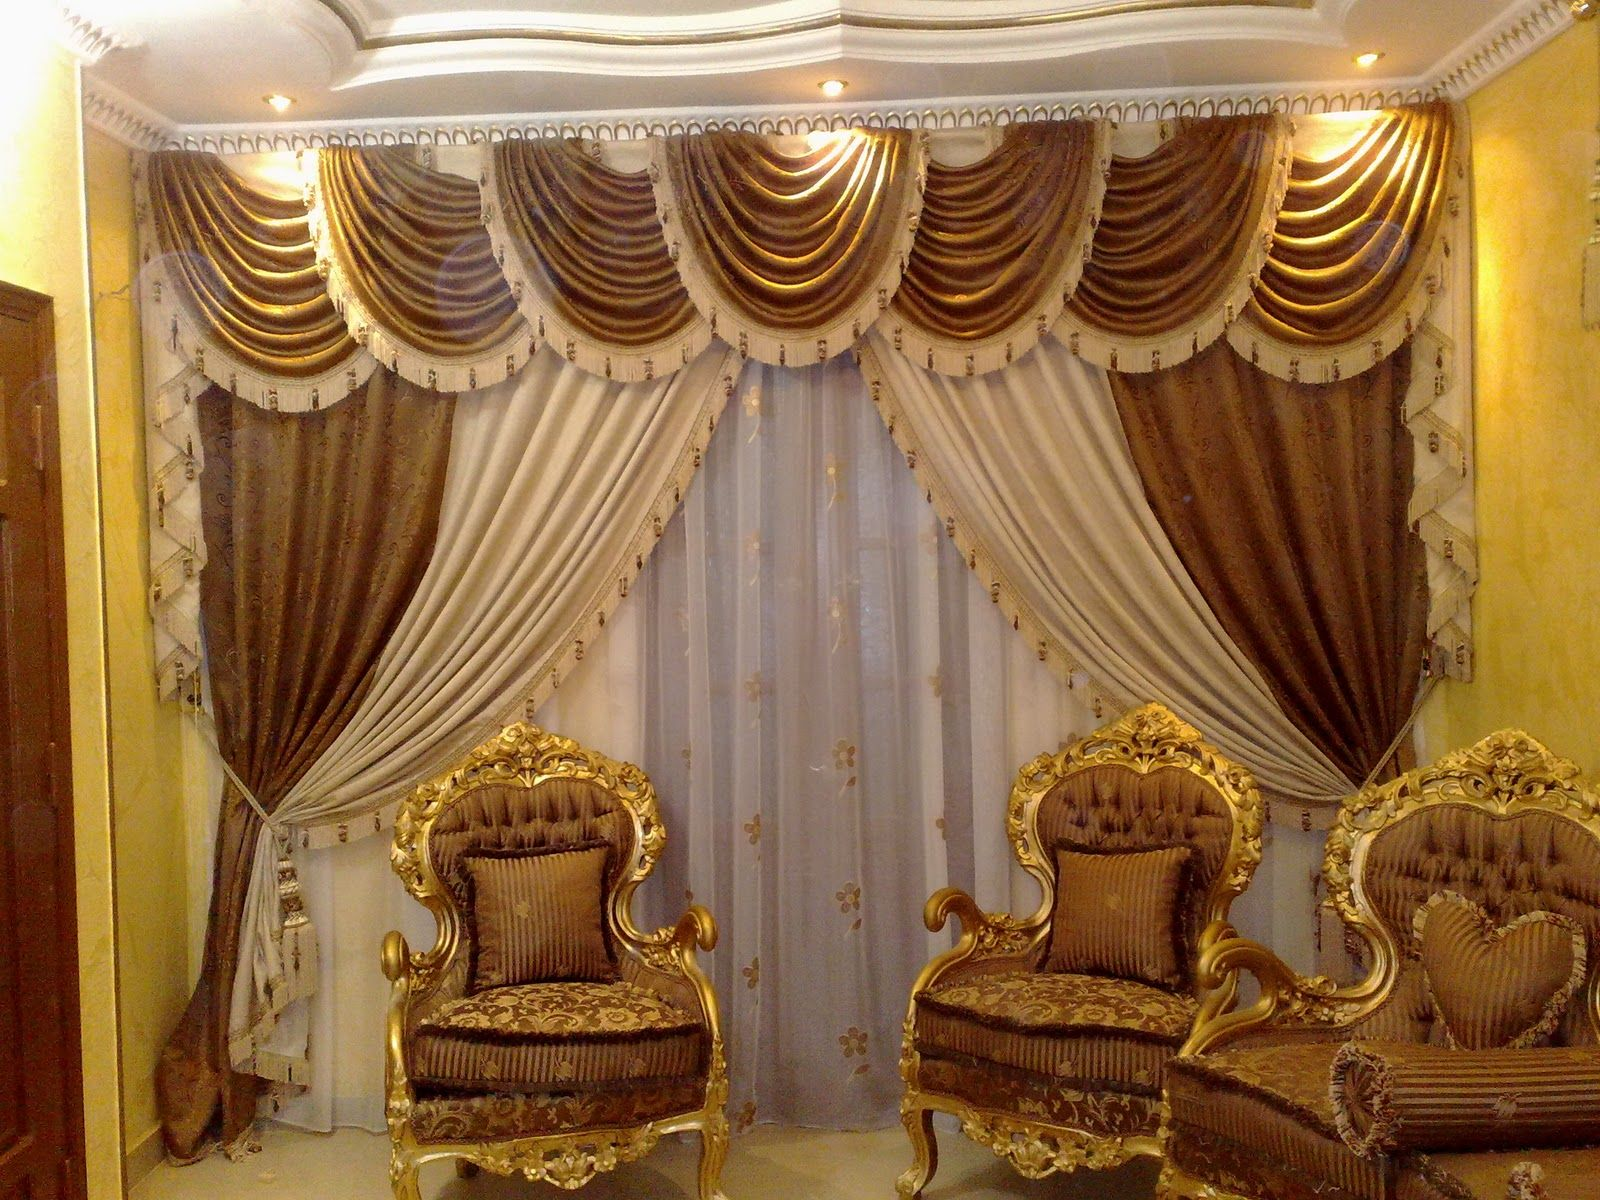 Curtains Design Ideas living room curtains design ideas 2016 calm and fresh interior thanks to the tulle drapery Luxury Curtain Designs For Small Gold Living Room Window Interior